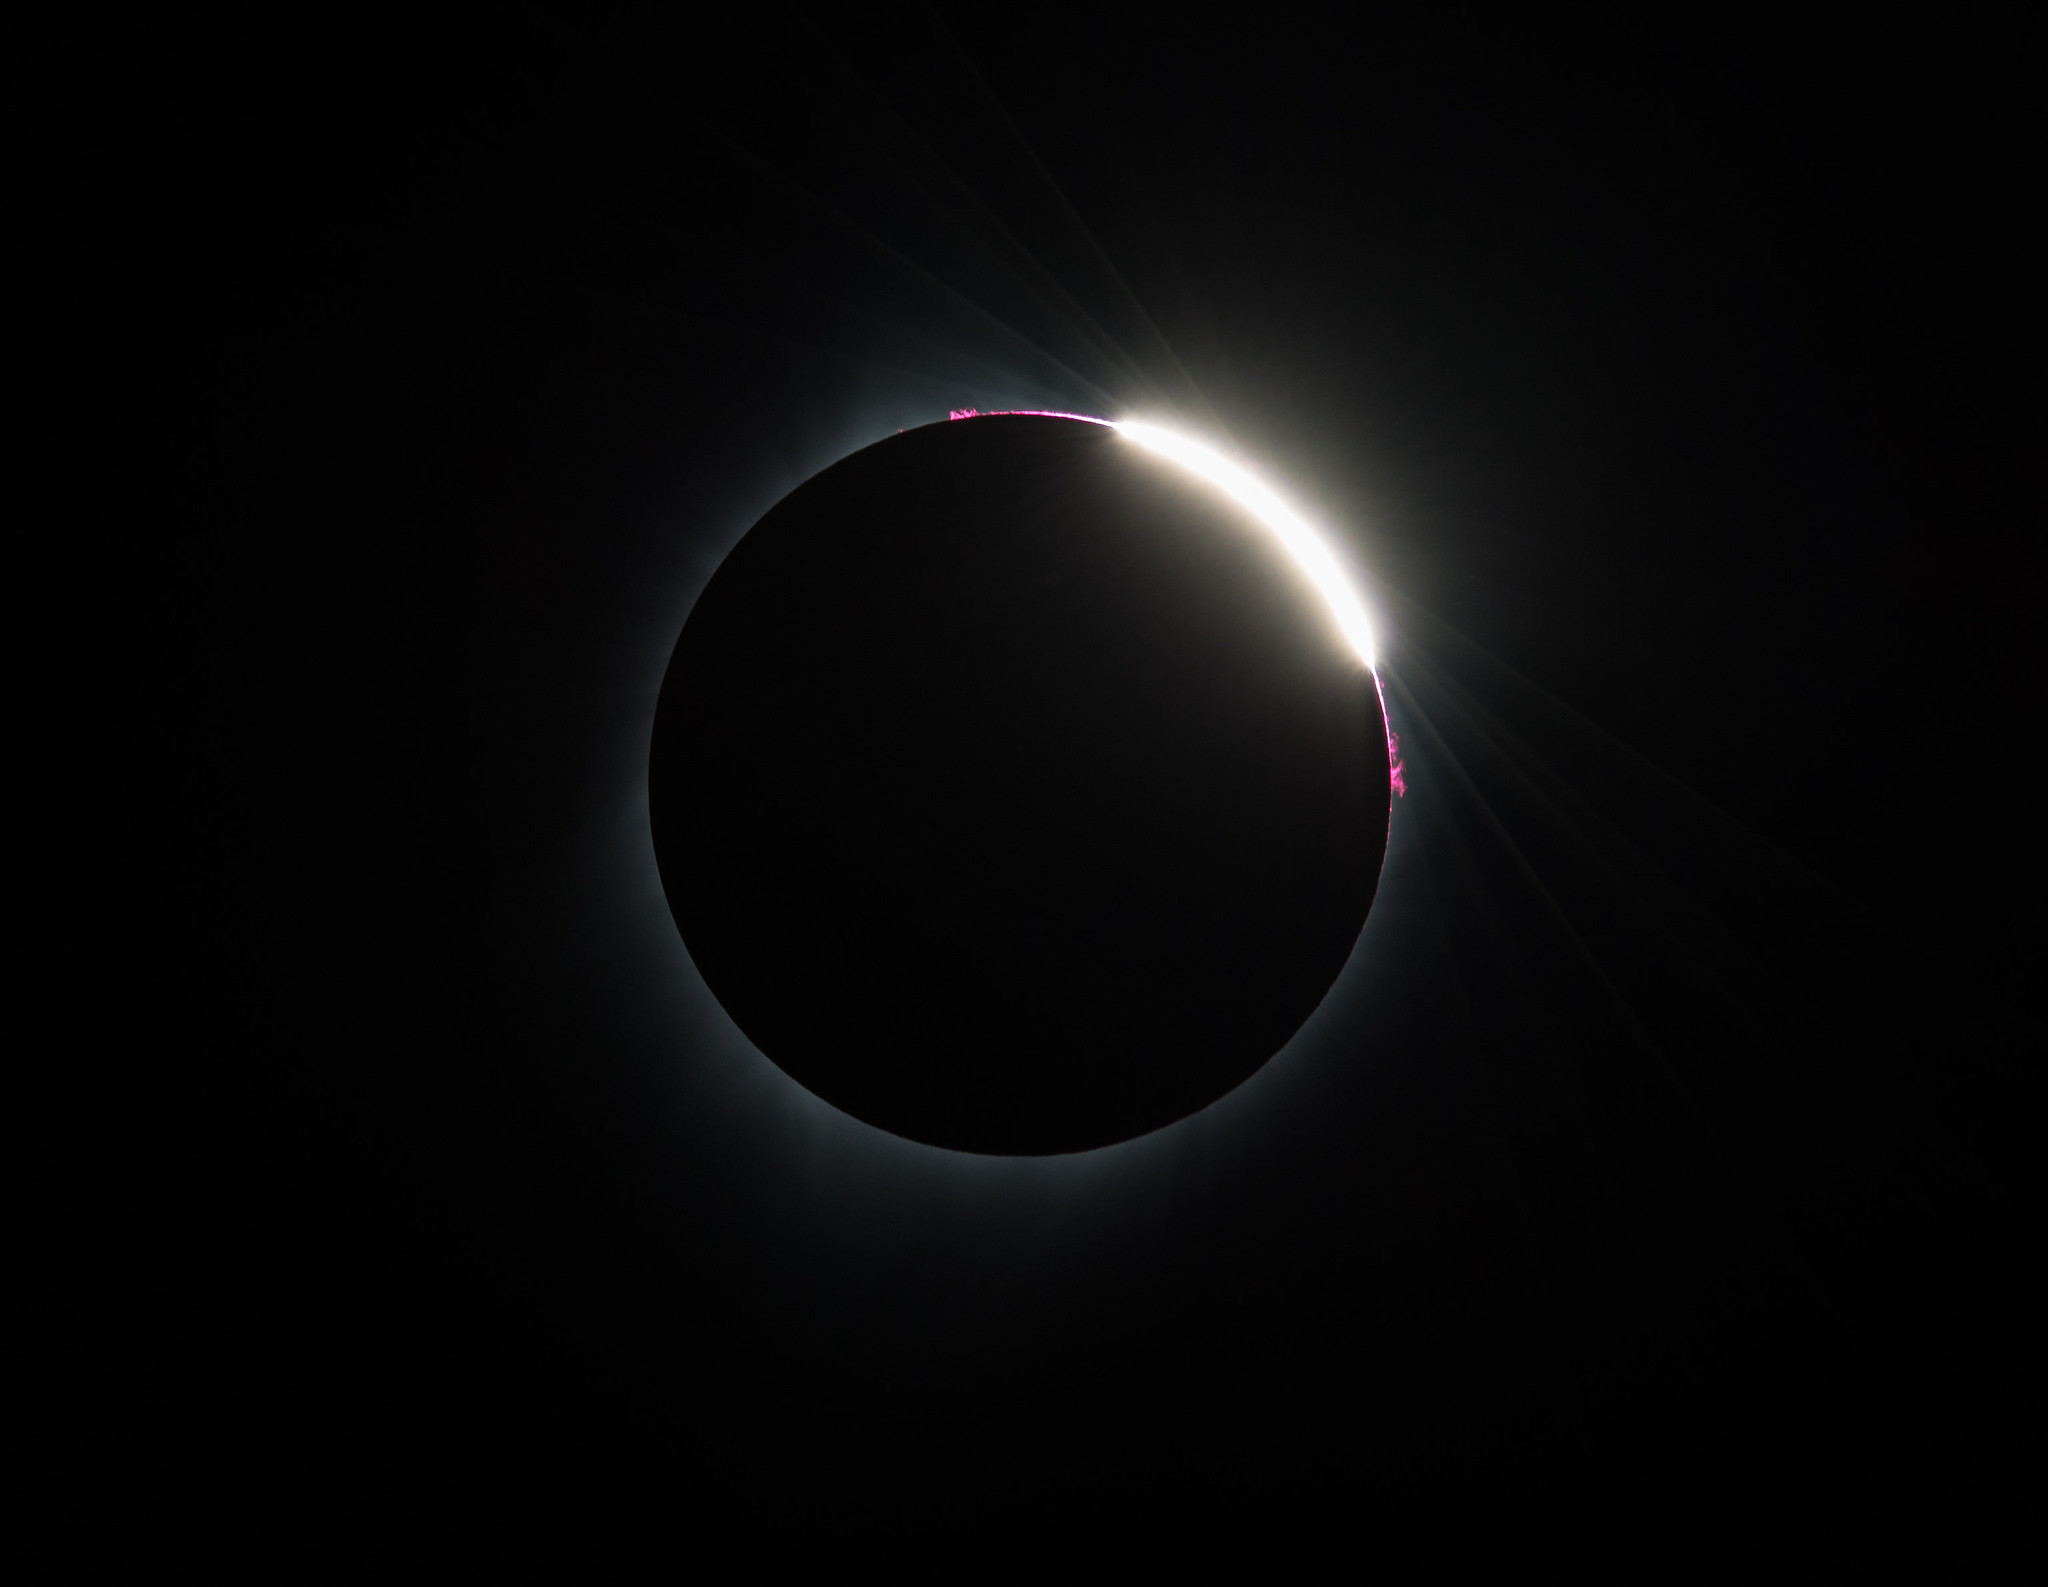 2017 Total Solar Eclipse (NHQ201708210104)